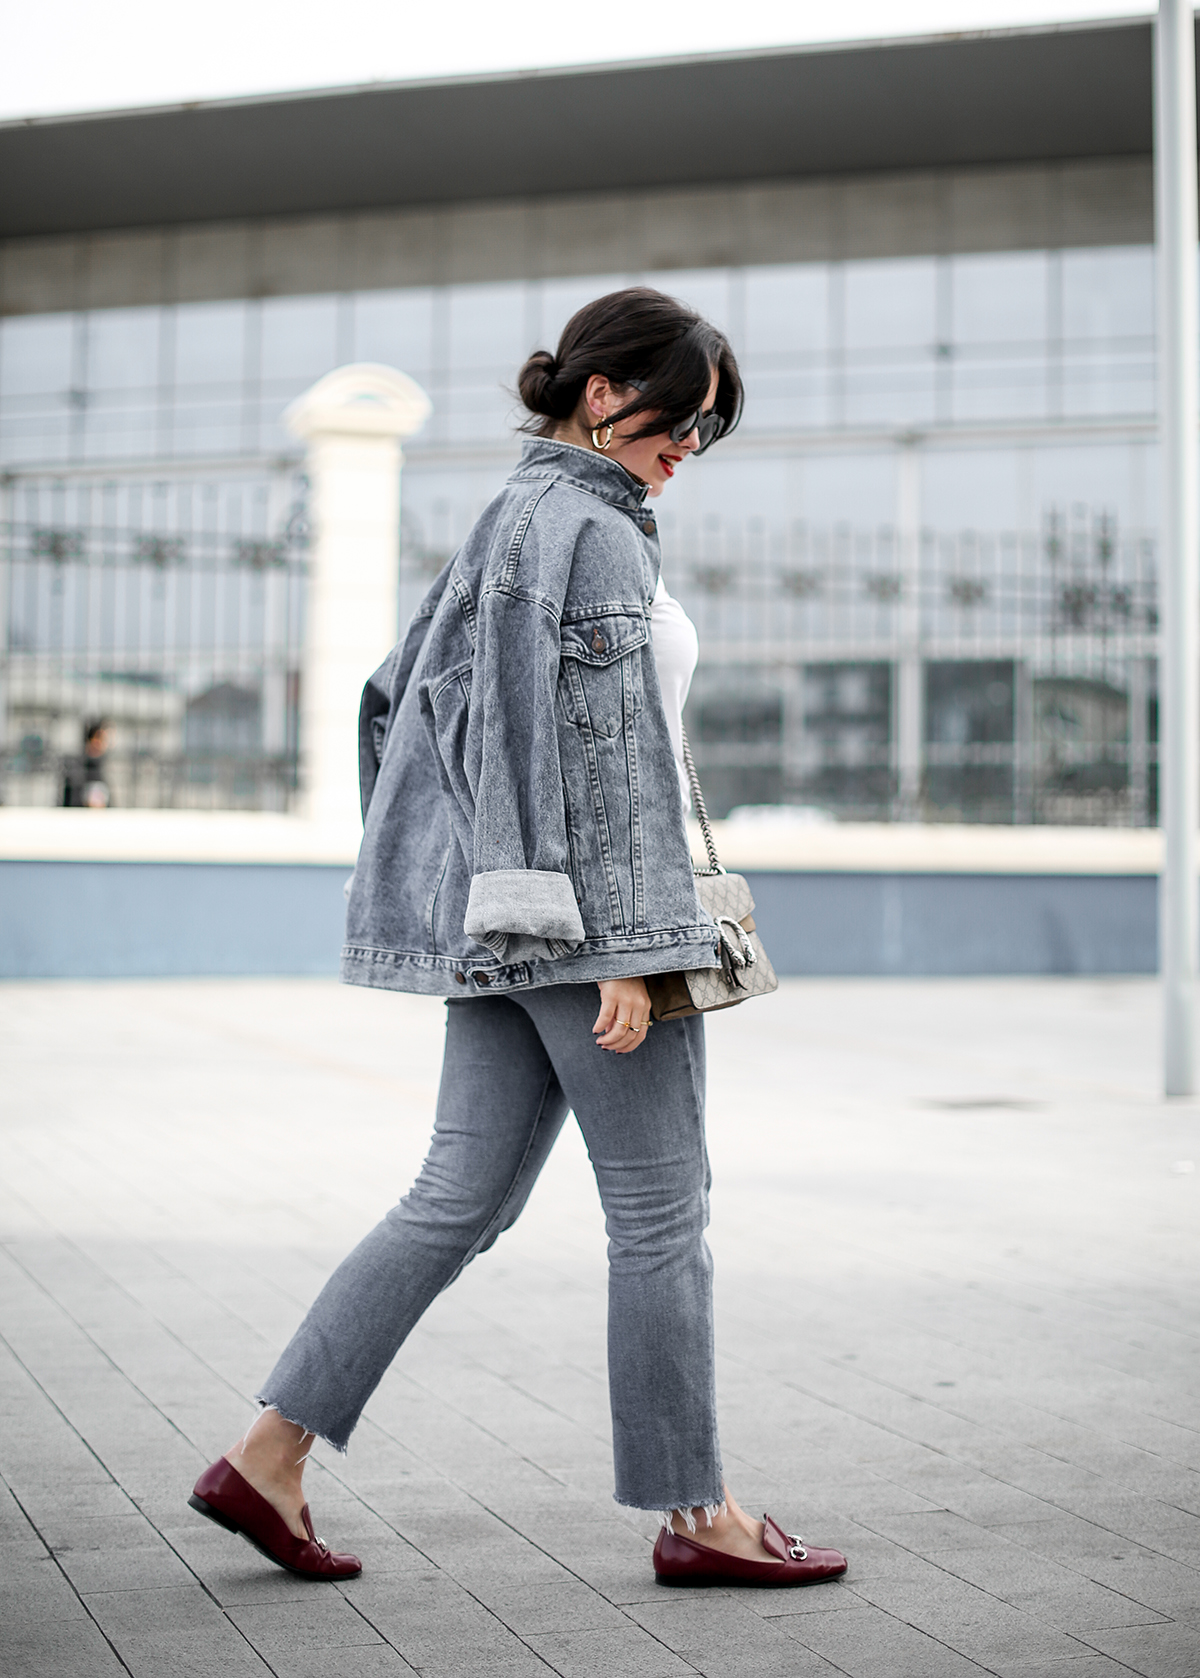 denim-total-look-levis-girl-vintage-gucci-horsebit-shoes-dionysus-bag7